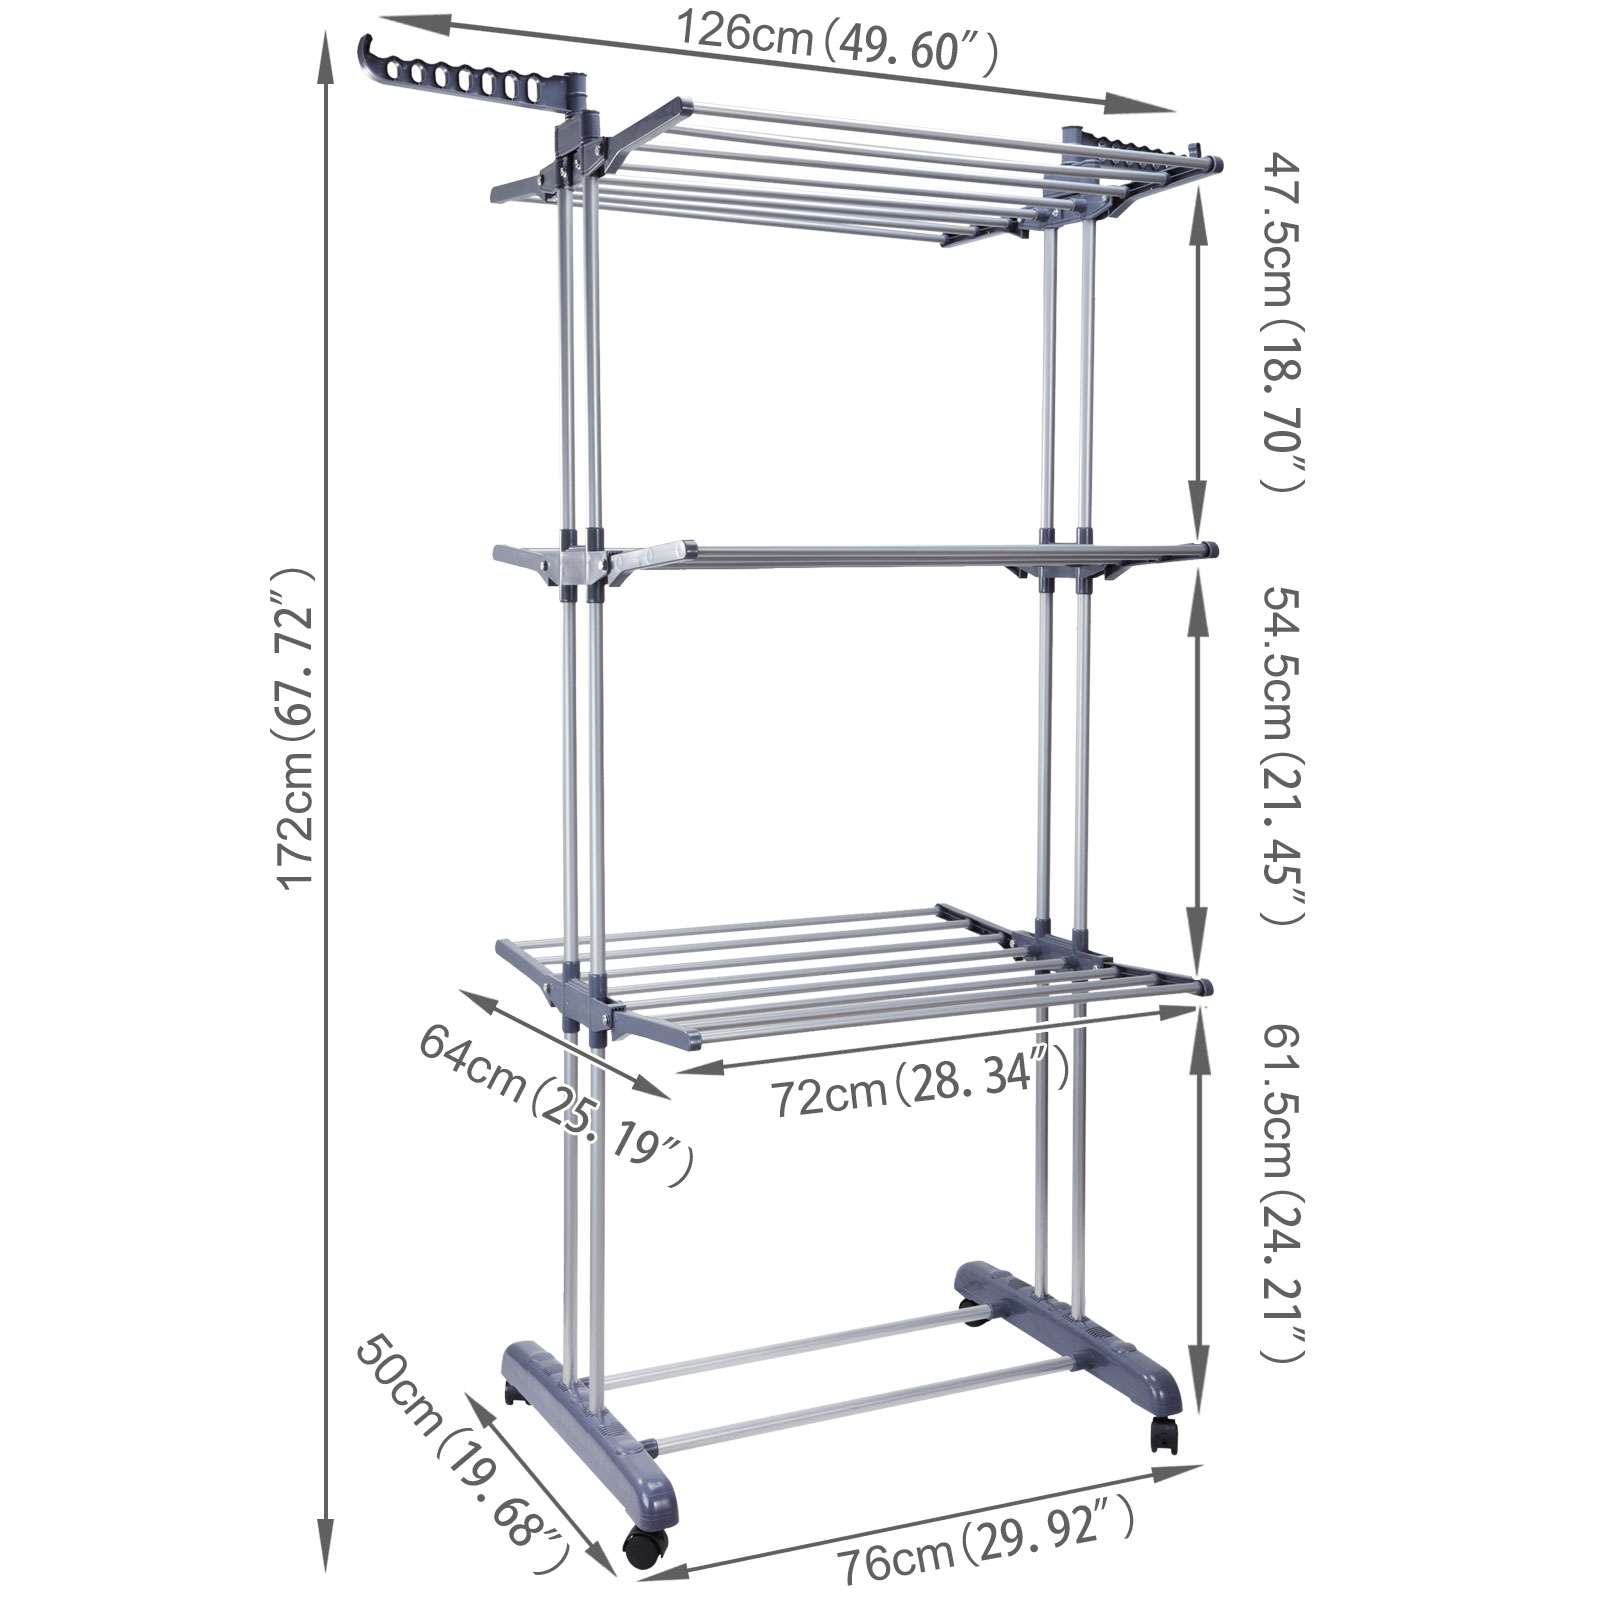 foldable 6 tiers clothes airer indoor laundry drying rack. Black Bedroom Furniture Sets. Home Design Ideas